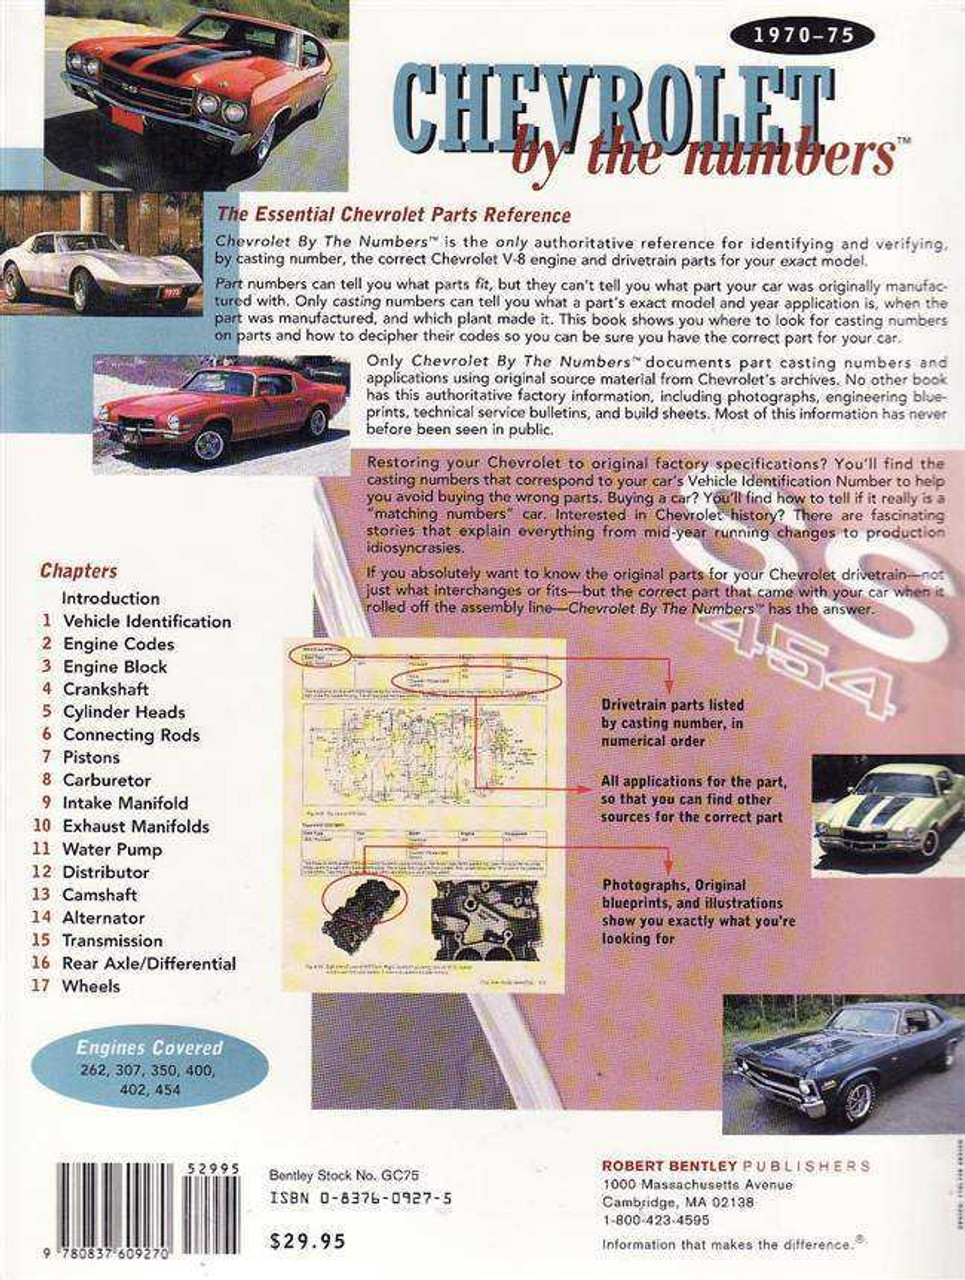 Chevrolet by The Numbers 1970 - 1975